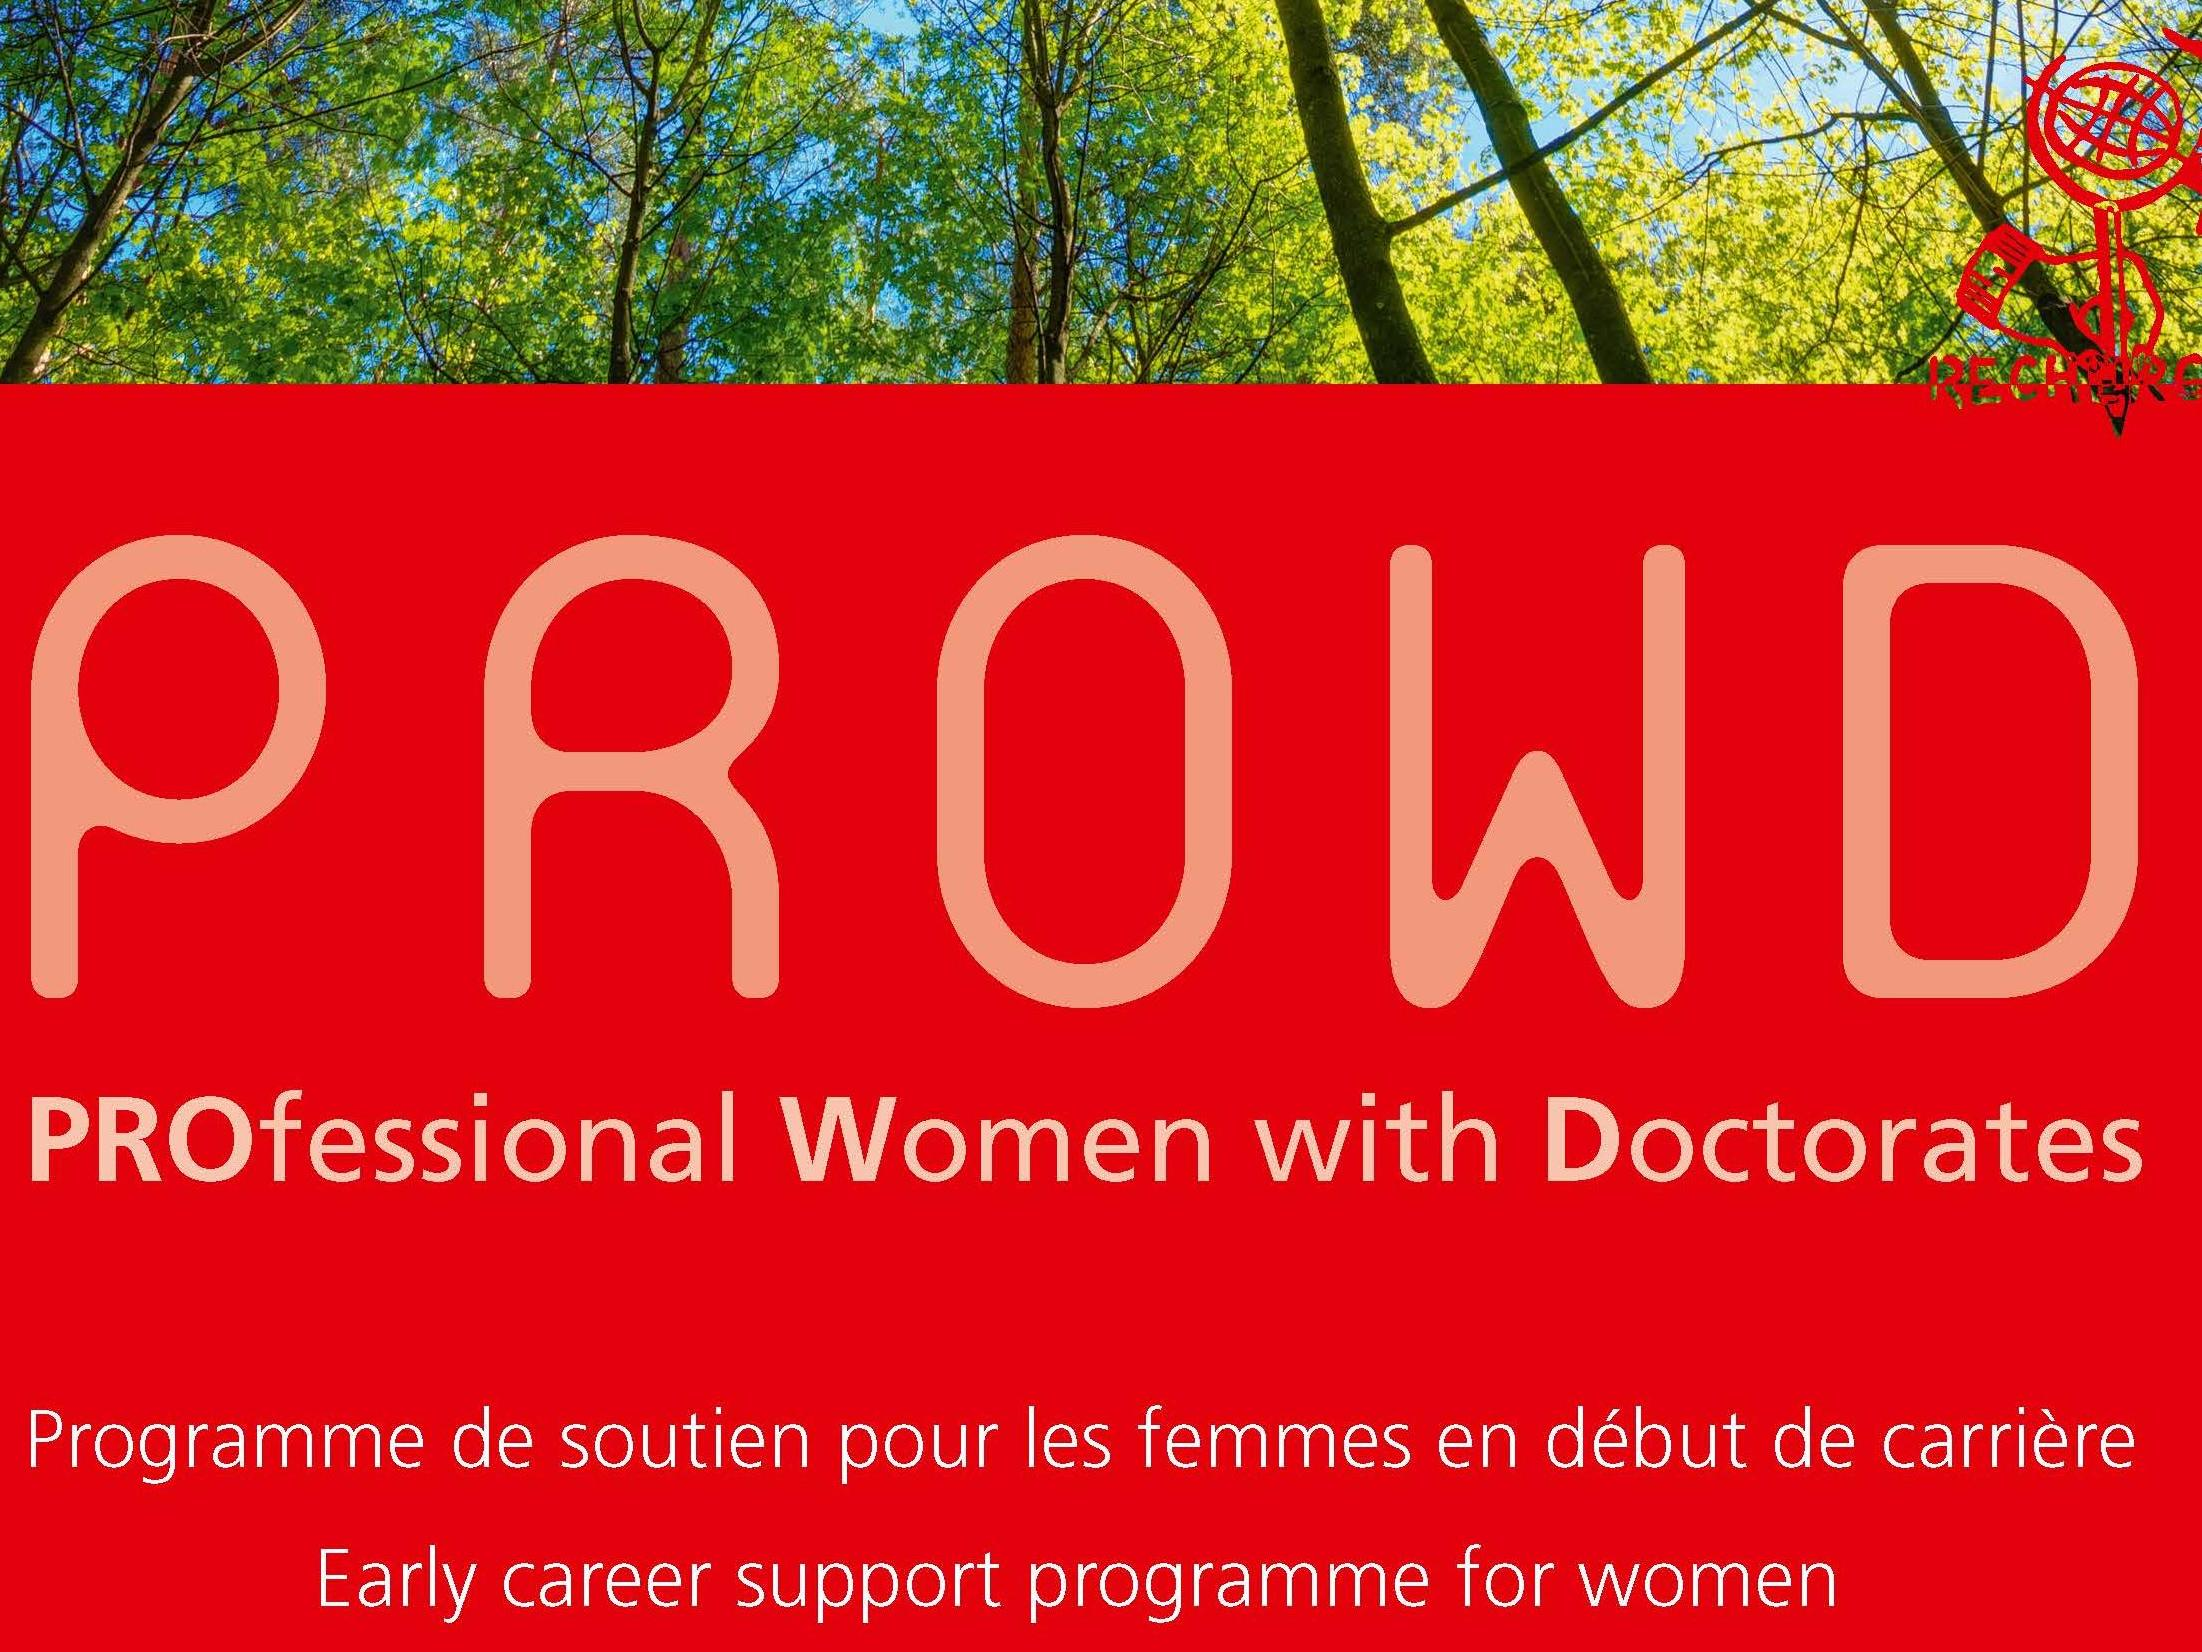 New early career support programme for women